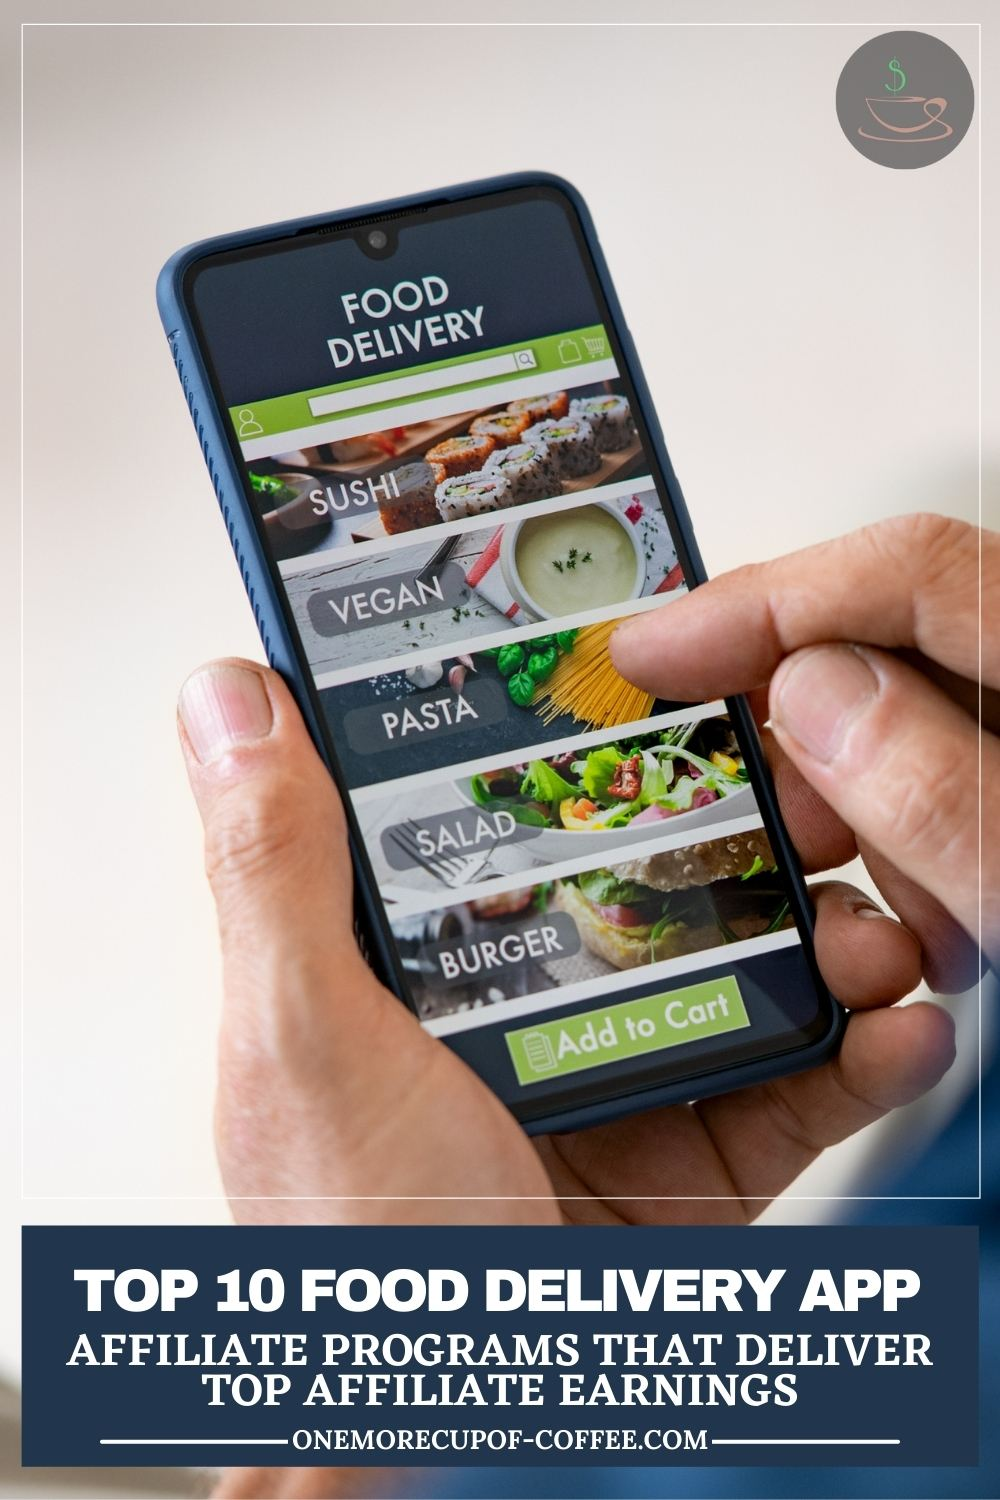 """closeup image of a mobile phone with a food delivery app on screen, with text overlay on a blue banner """"Top 10 Food Delivery App Affiliate Programs That Deliver Top Affiliate Earnings"""""""